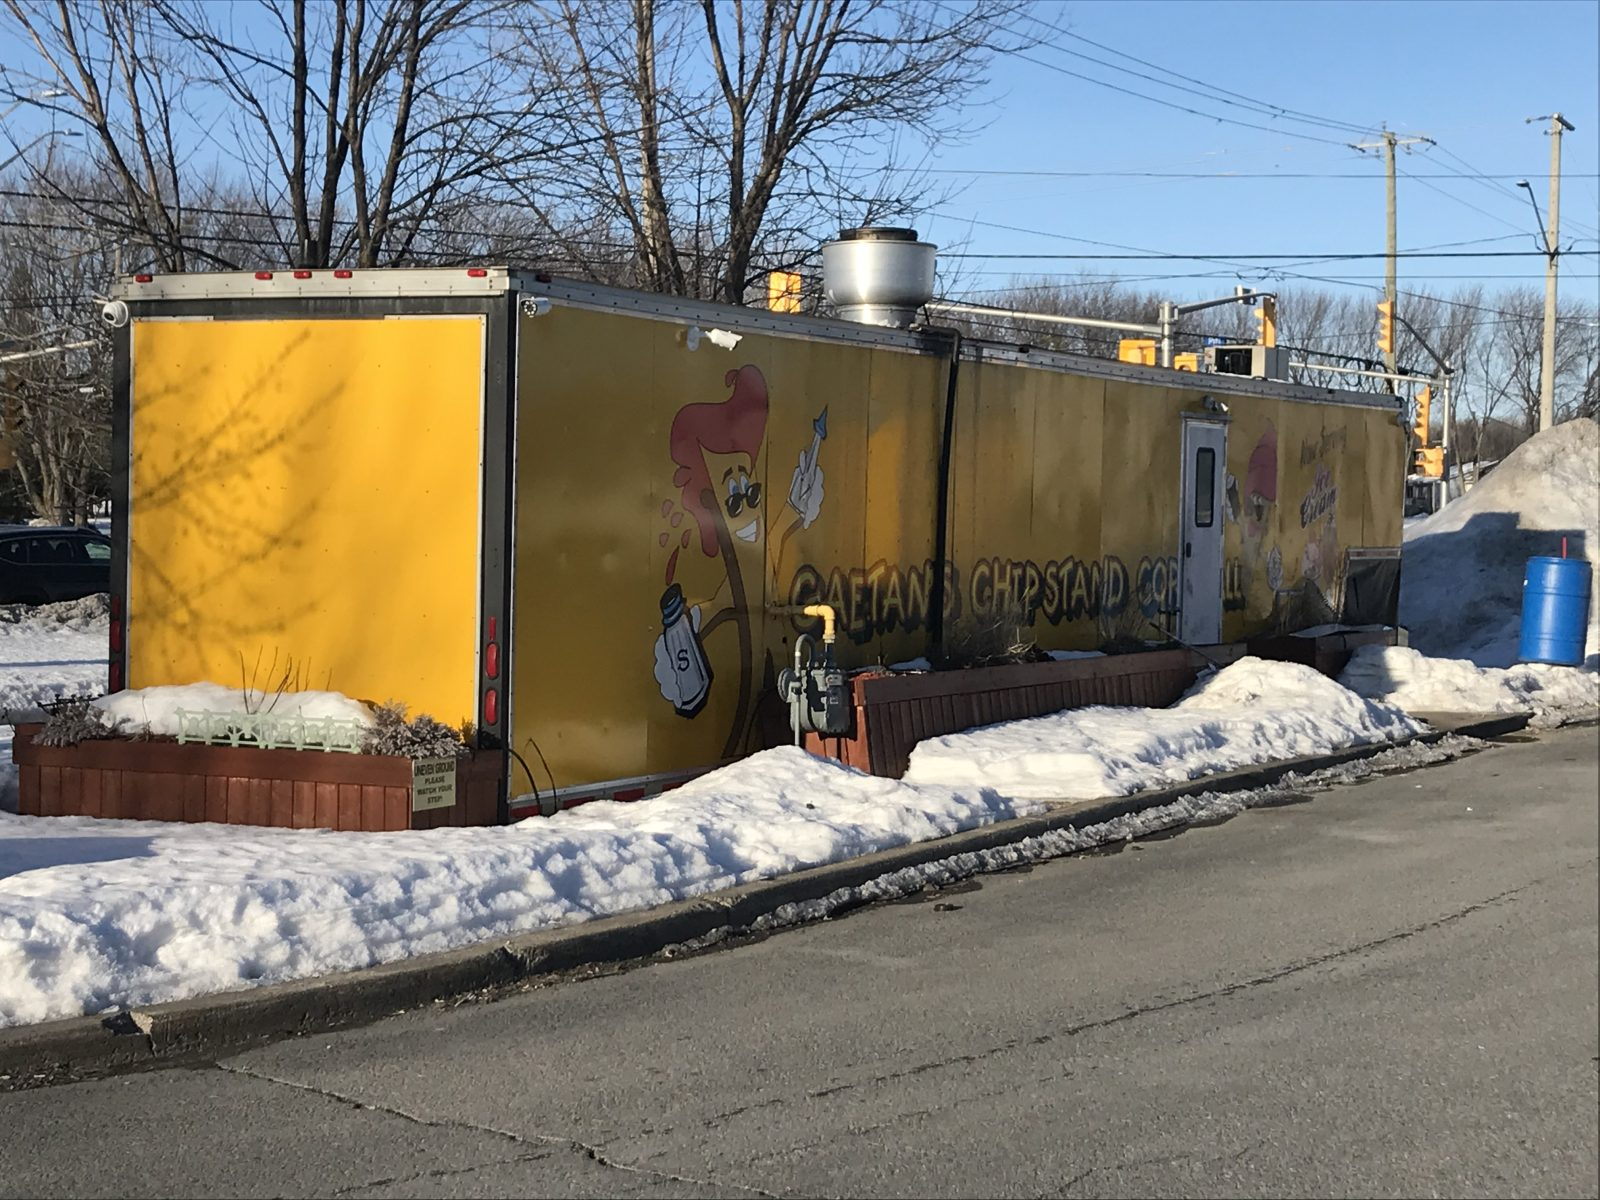 South Glengarry considers food truck by-law changes